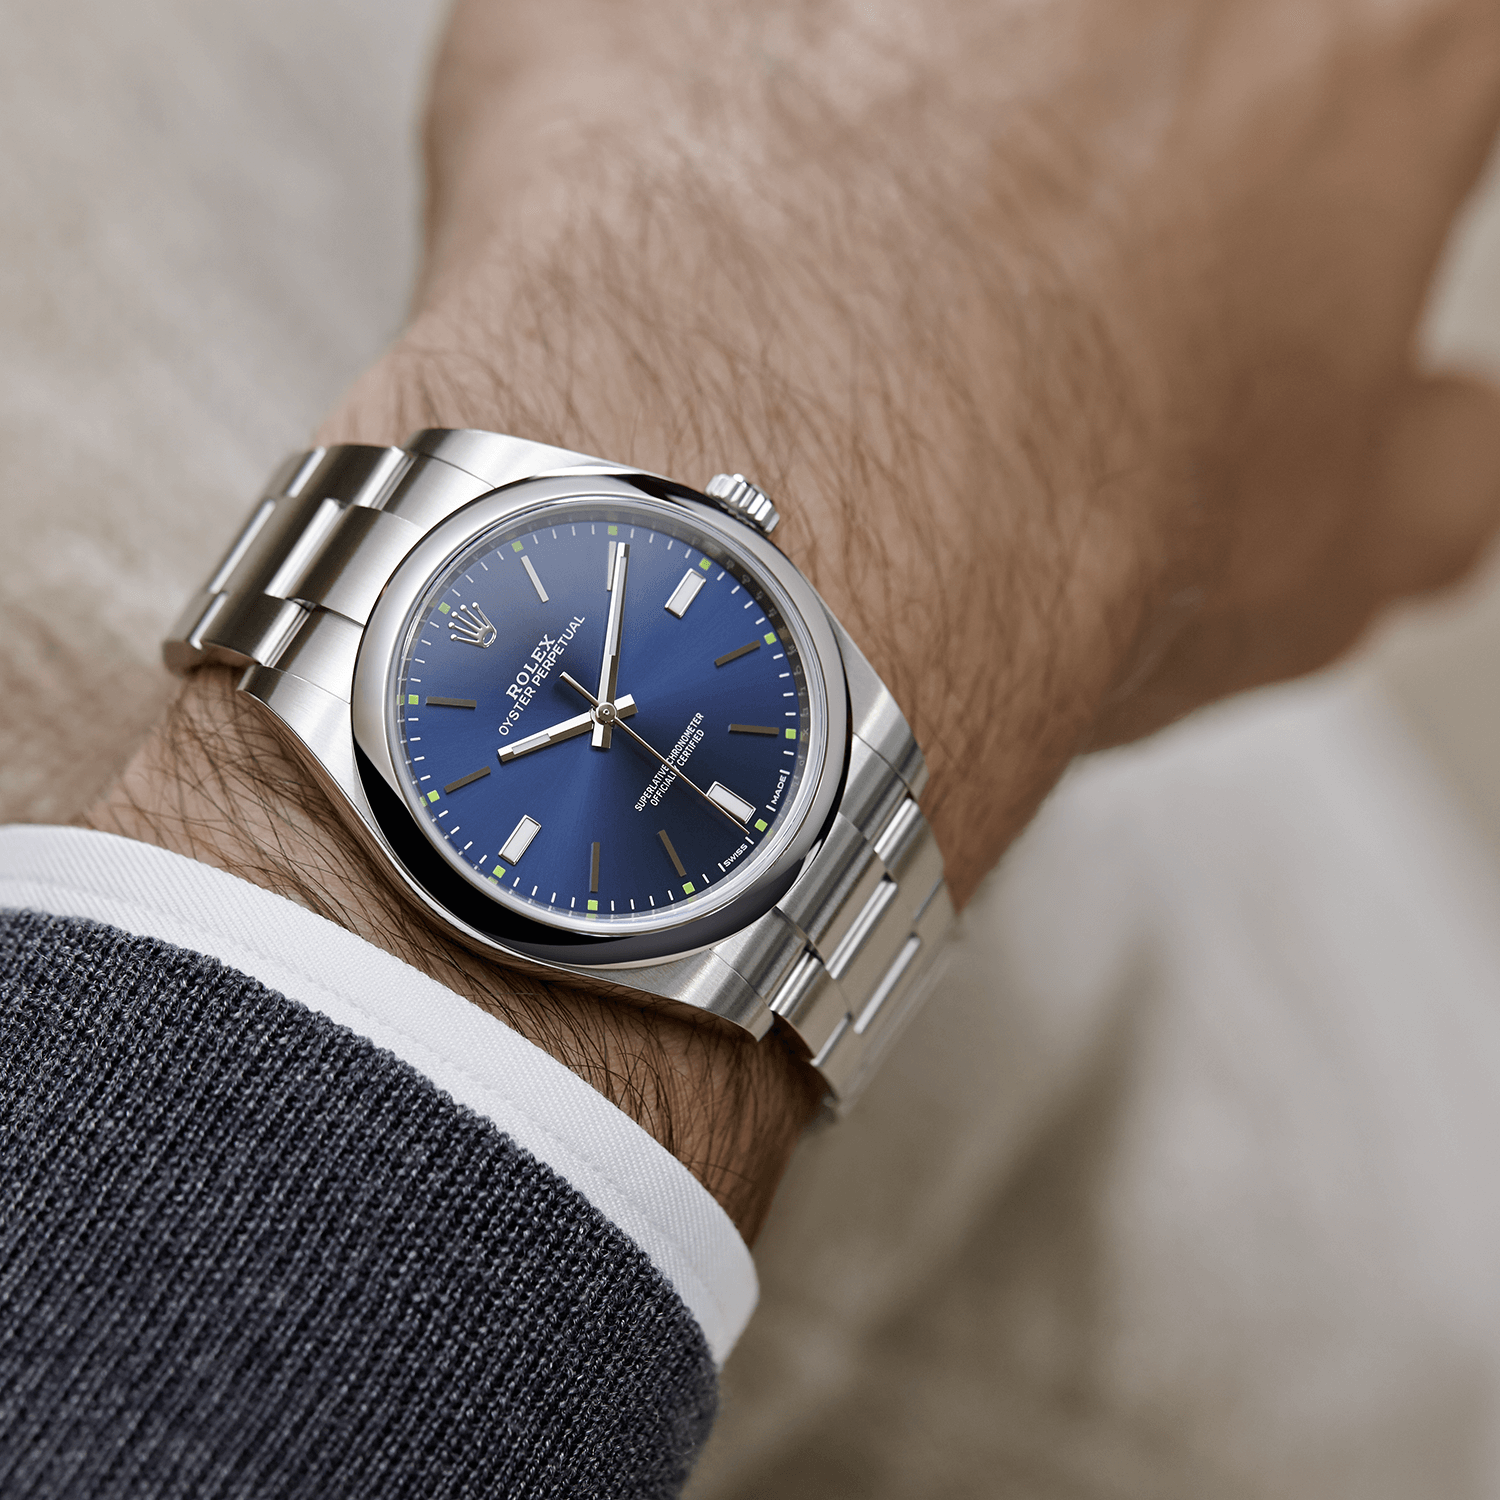 b5d663faf04 The Rolex Oyster Perpetual 39 in Oystersteel